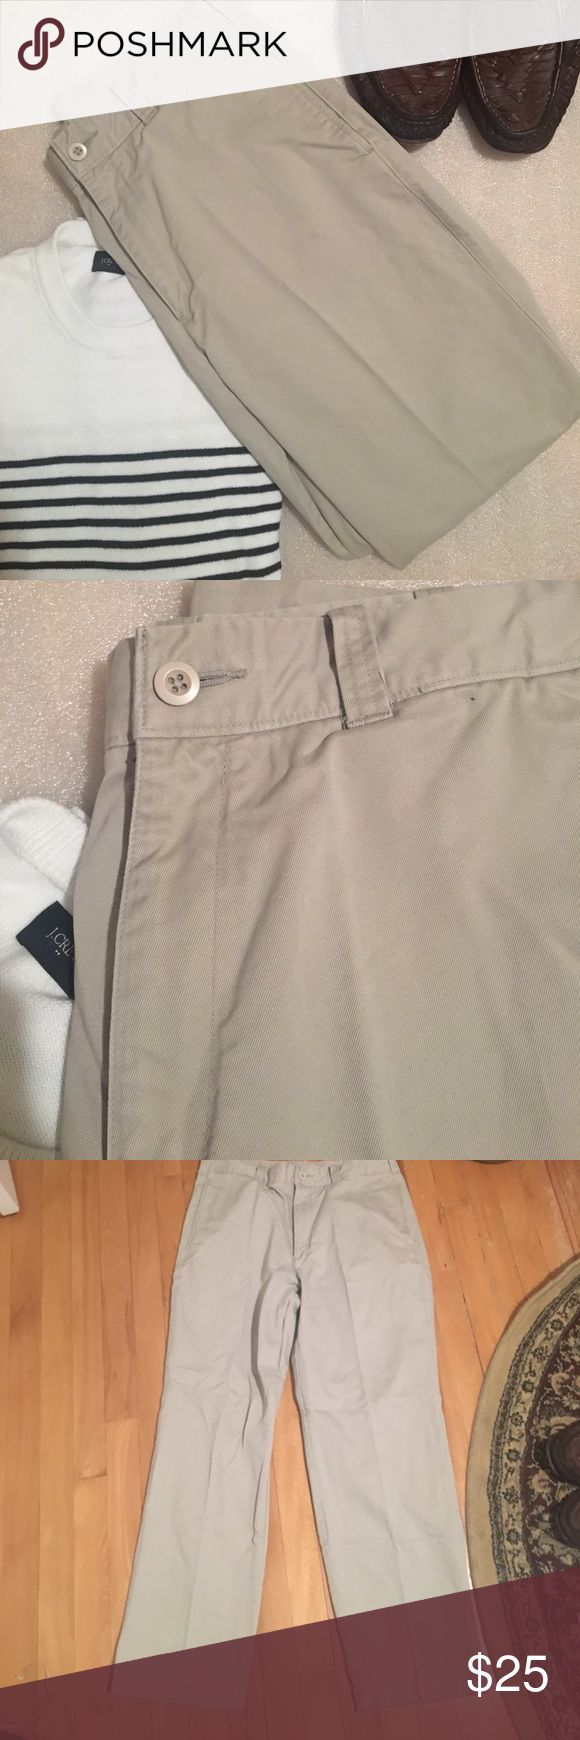 """🆕LISTING: SAVANE KHAKIS Who doesn't need a classic pair of khakis! These are the perfect for any gentleman! They fall on the more taupe color of the khaki family! There's a MINOR stain on the bottom back leg that can most likely be removed with a little TLC- but hey that means an even more discounted price for you! The inseam is 29""""! Savane Pants Chinos & Khakis"""